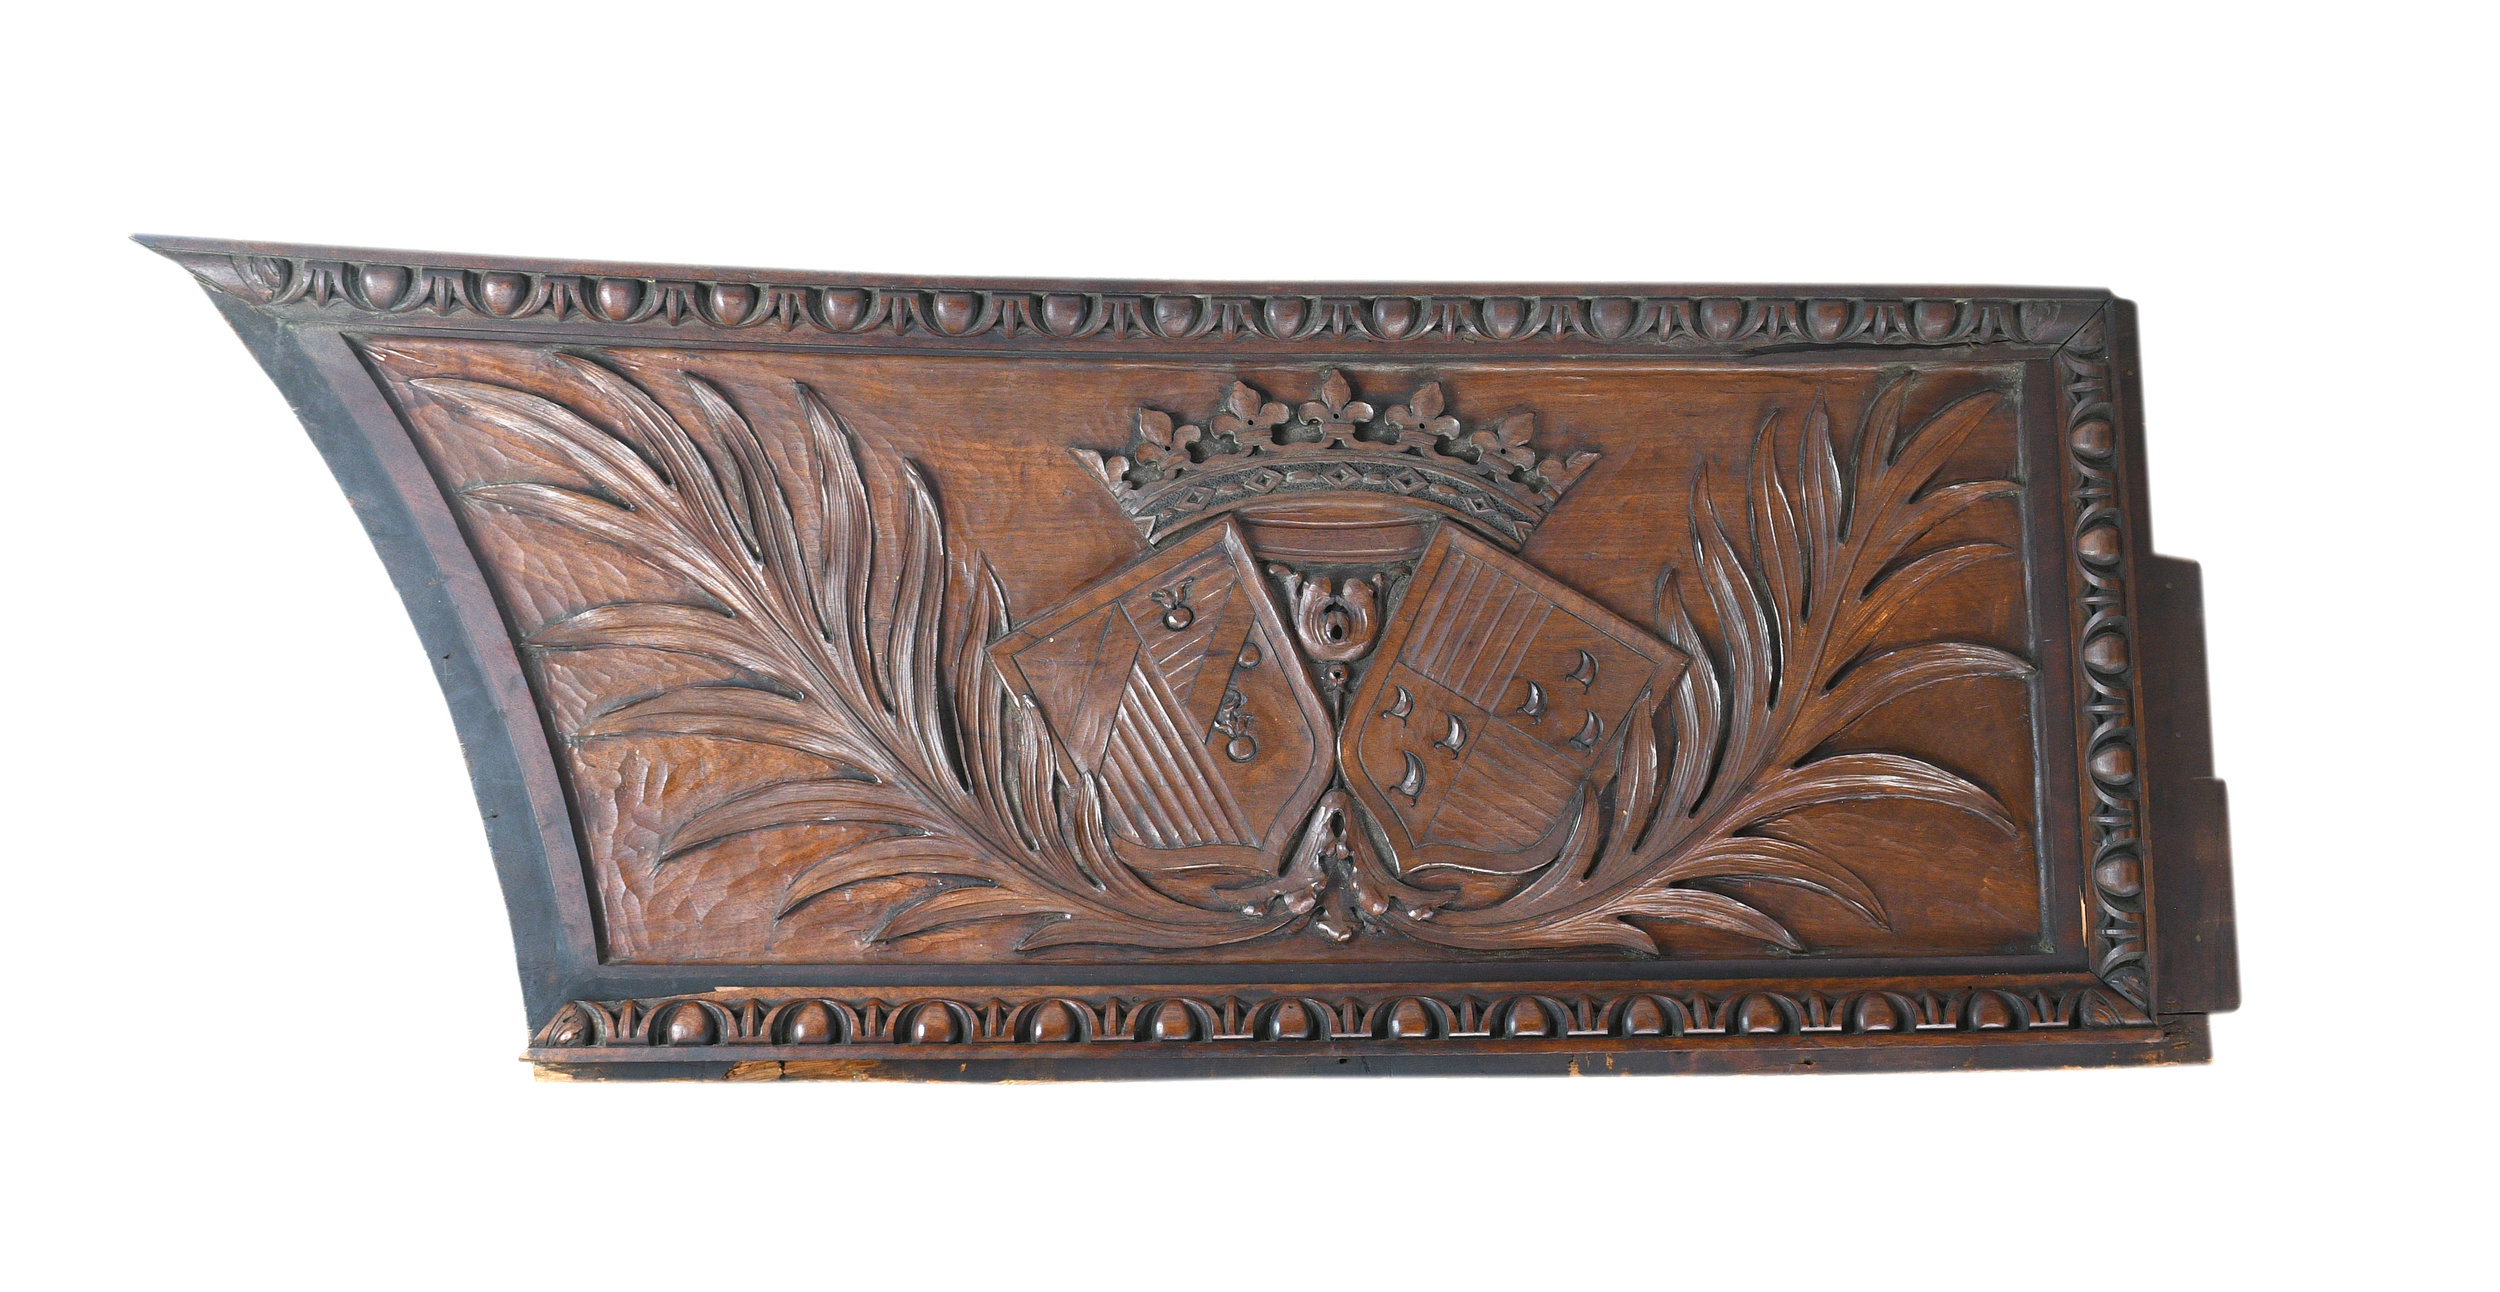 HISTORIC PITTSBURGH OLIVER HOUSE HAND CARVED COAT OF ARMS    Click here for more information